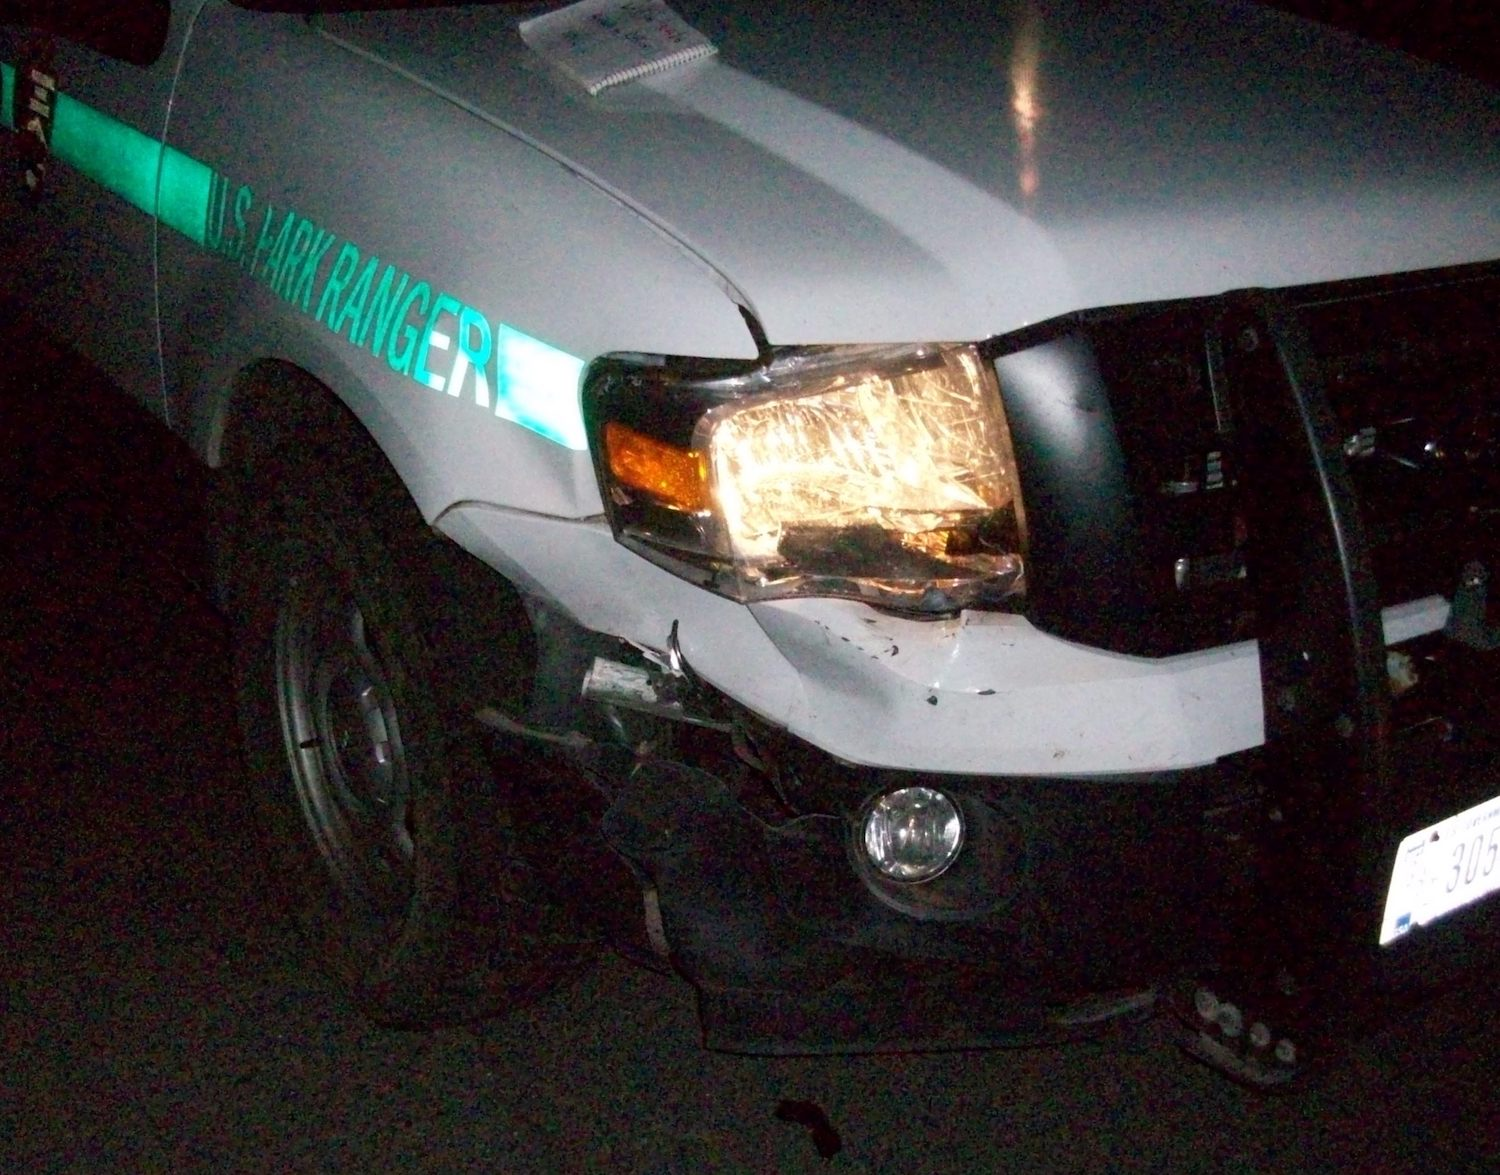 A man rammed a US Park Ranger's patrol vehicle. NPS photo.